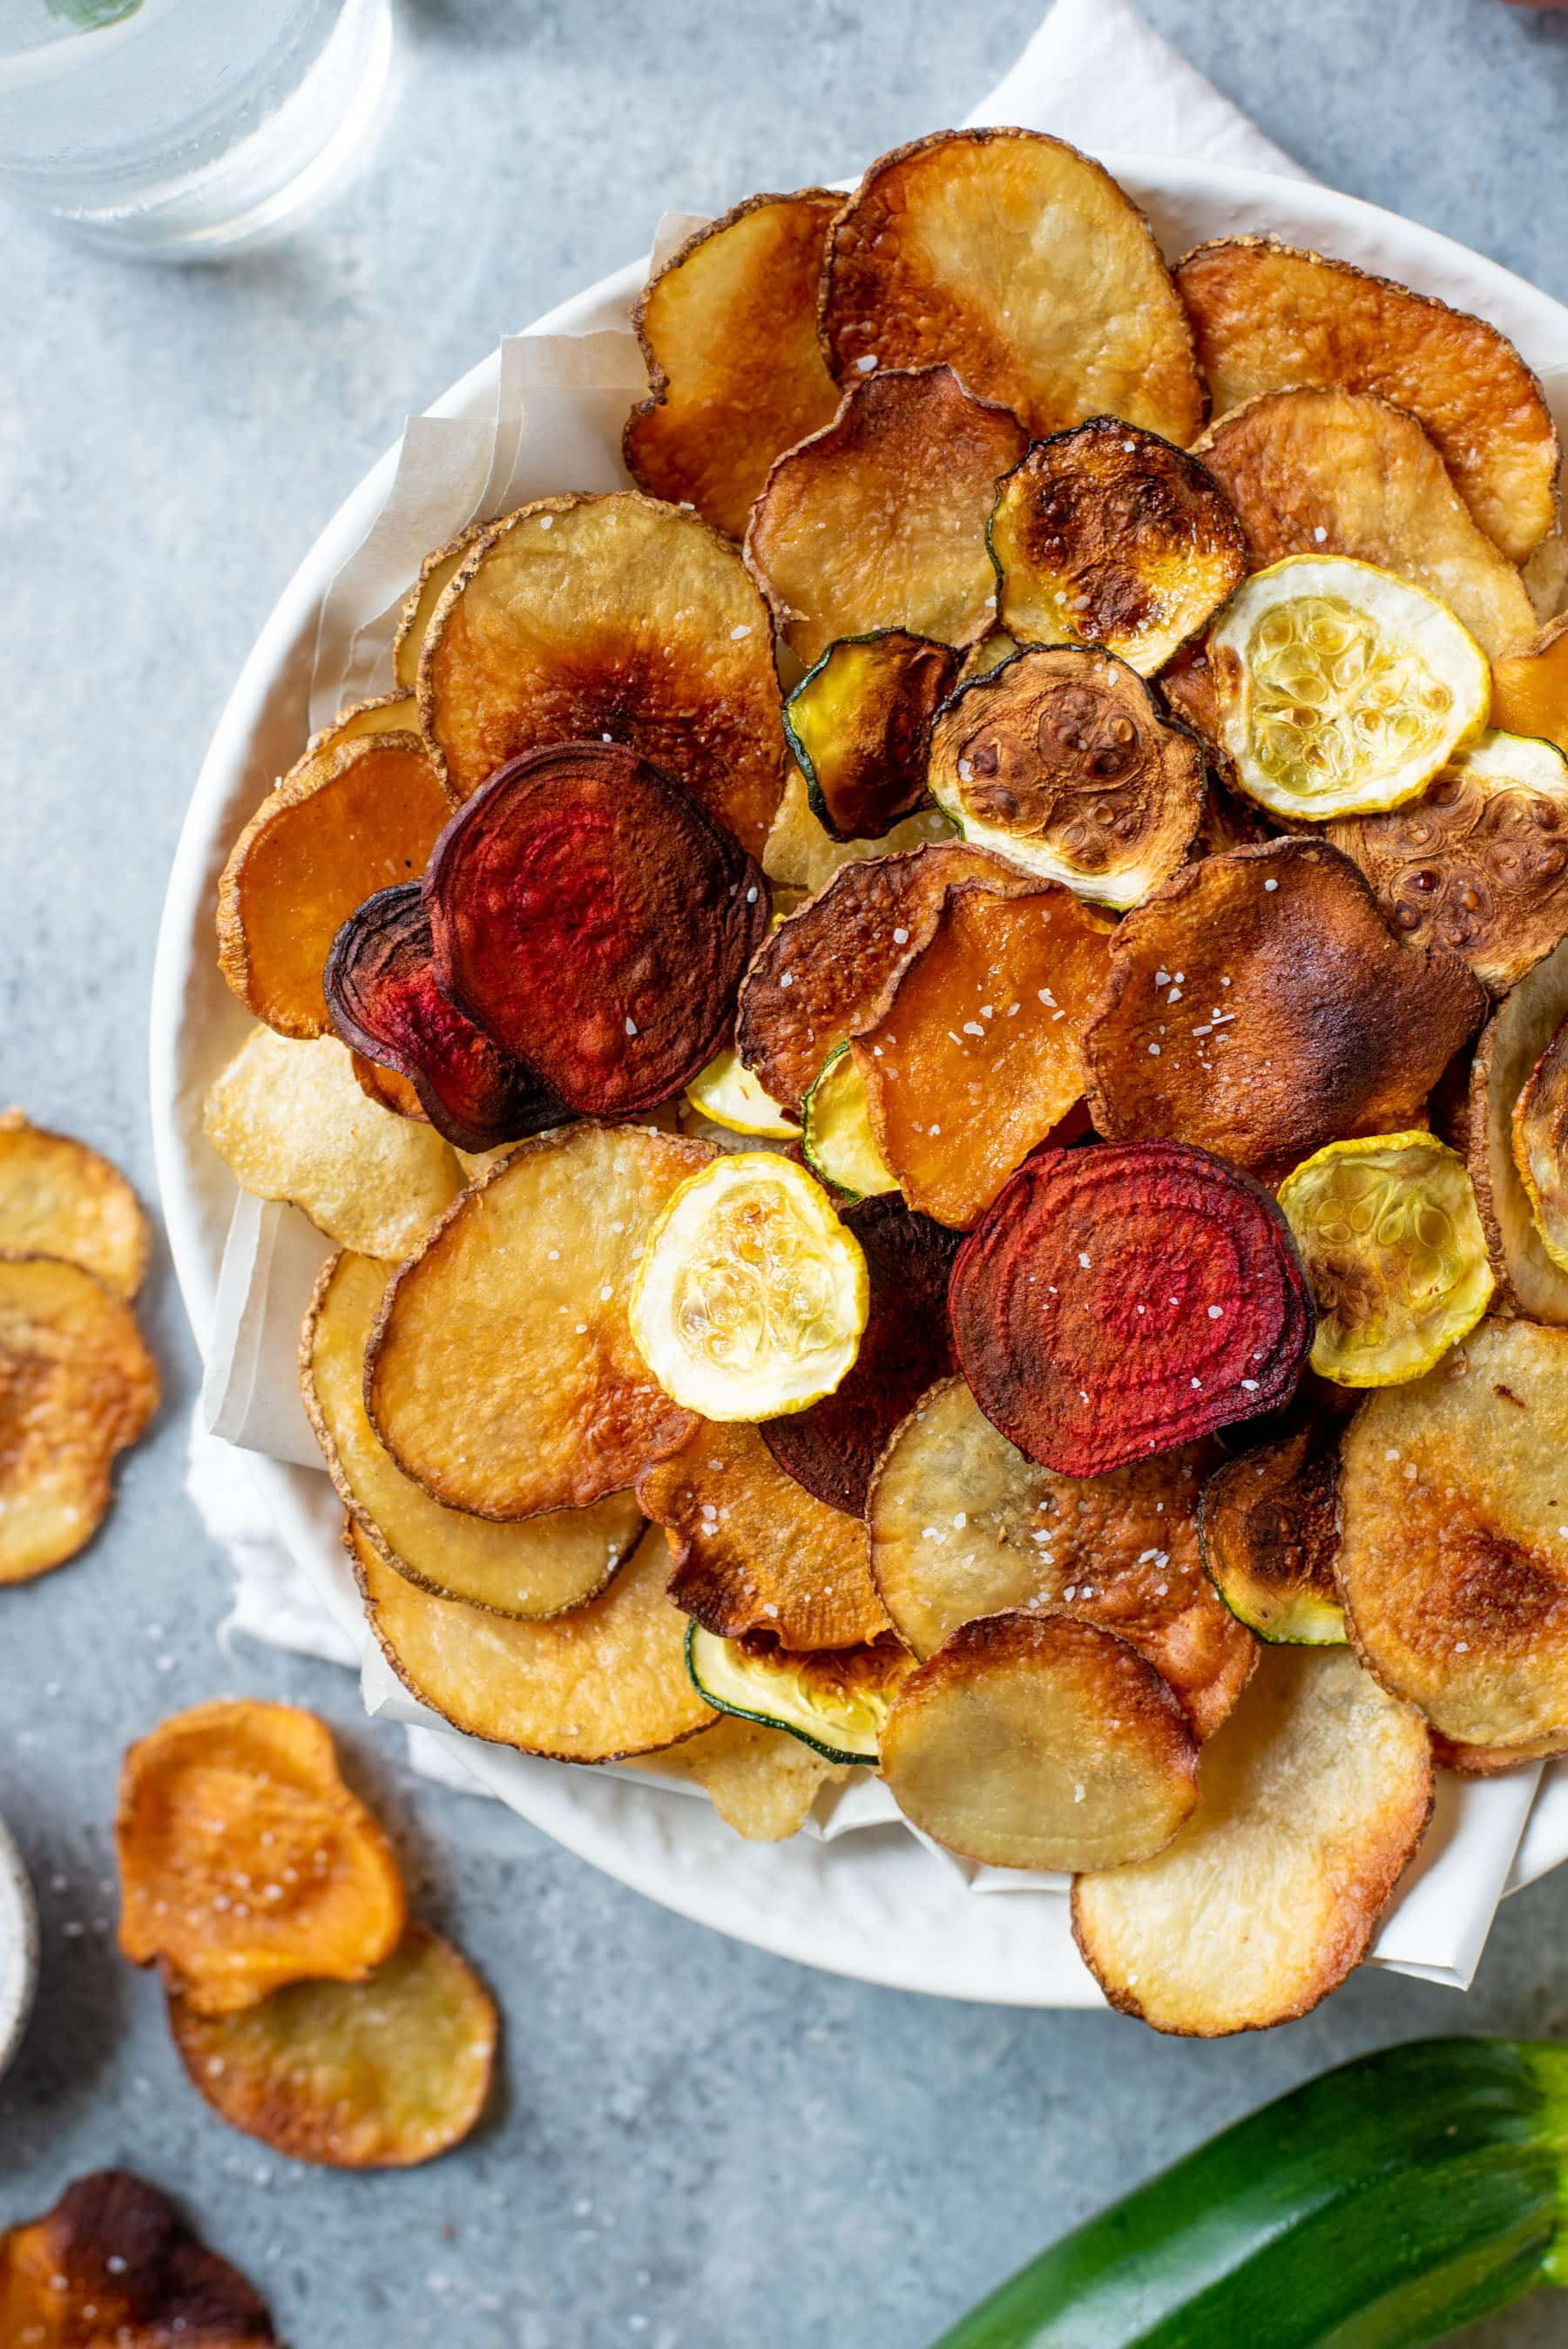 Close-up shot of Baked Vegetable Chips in a white bowl